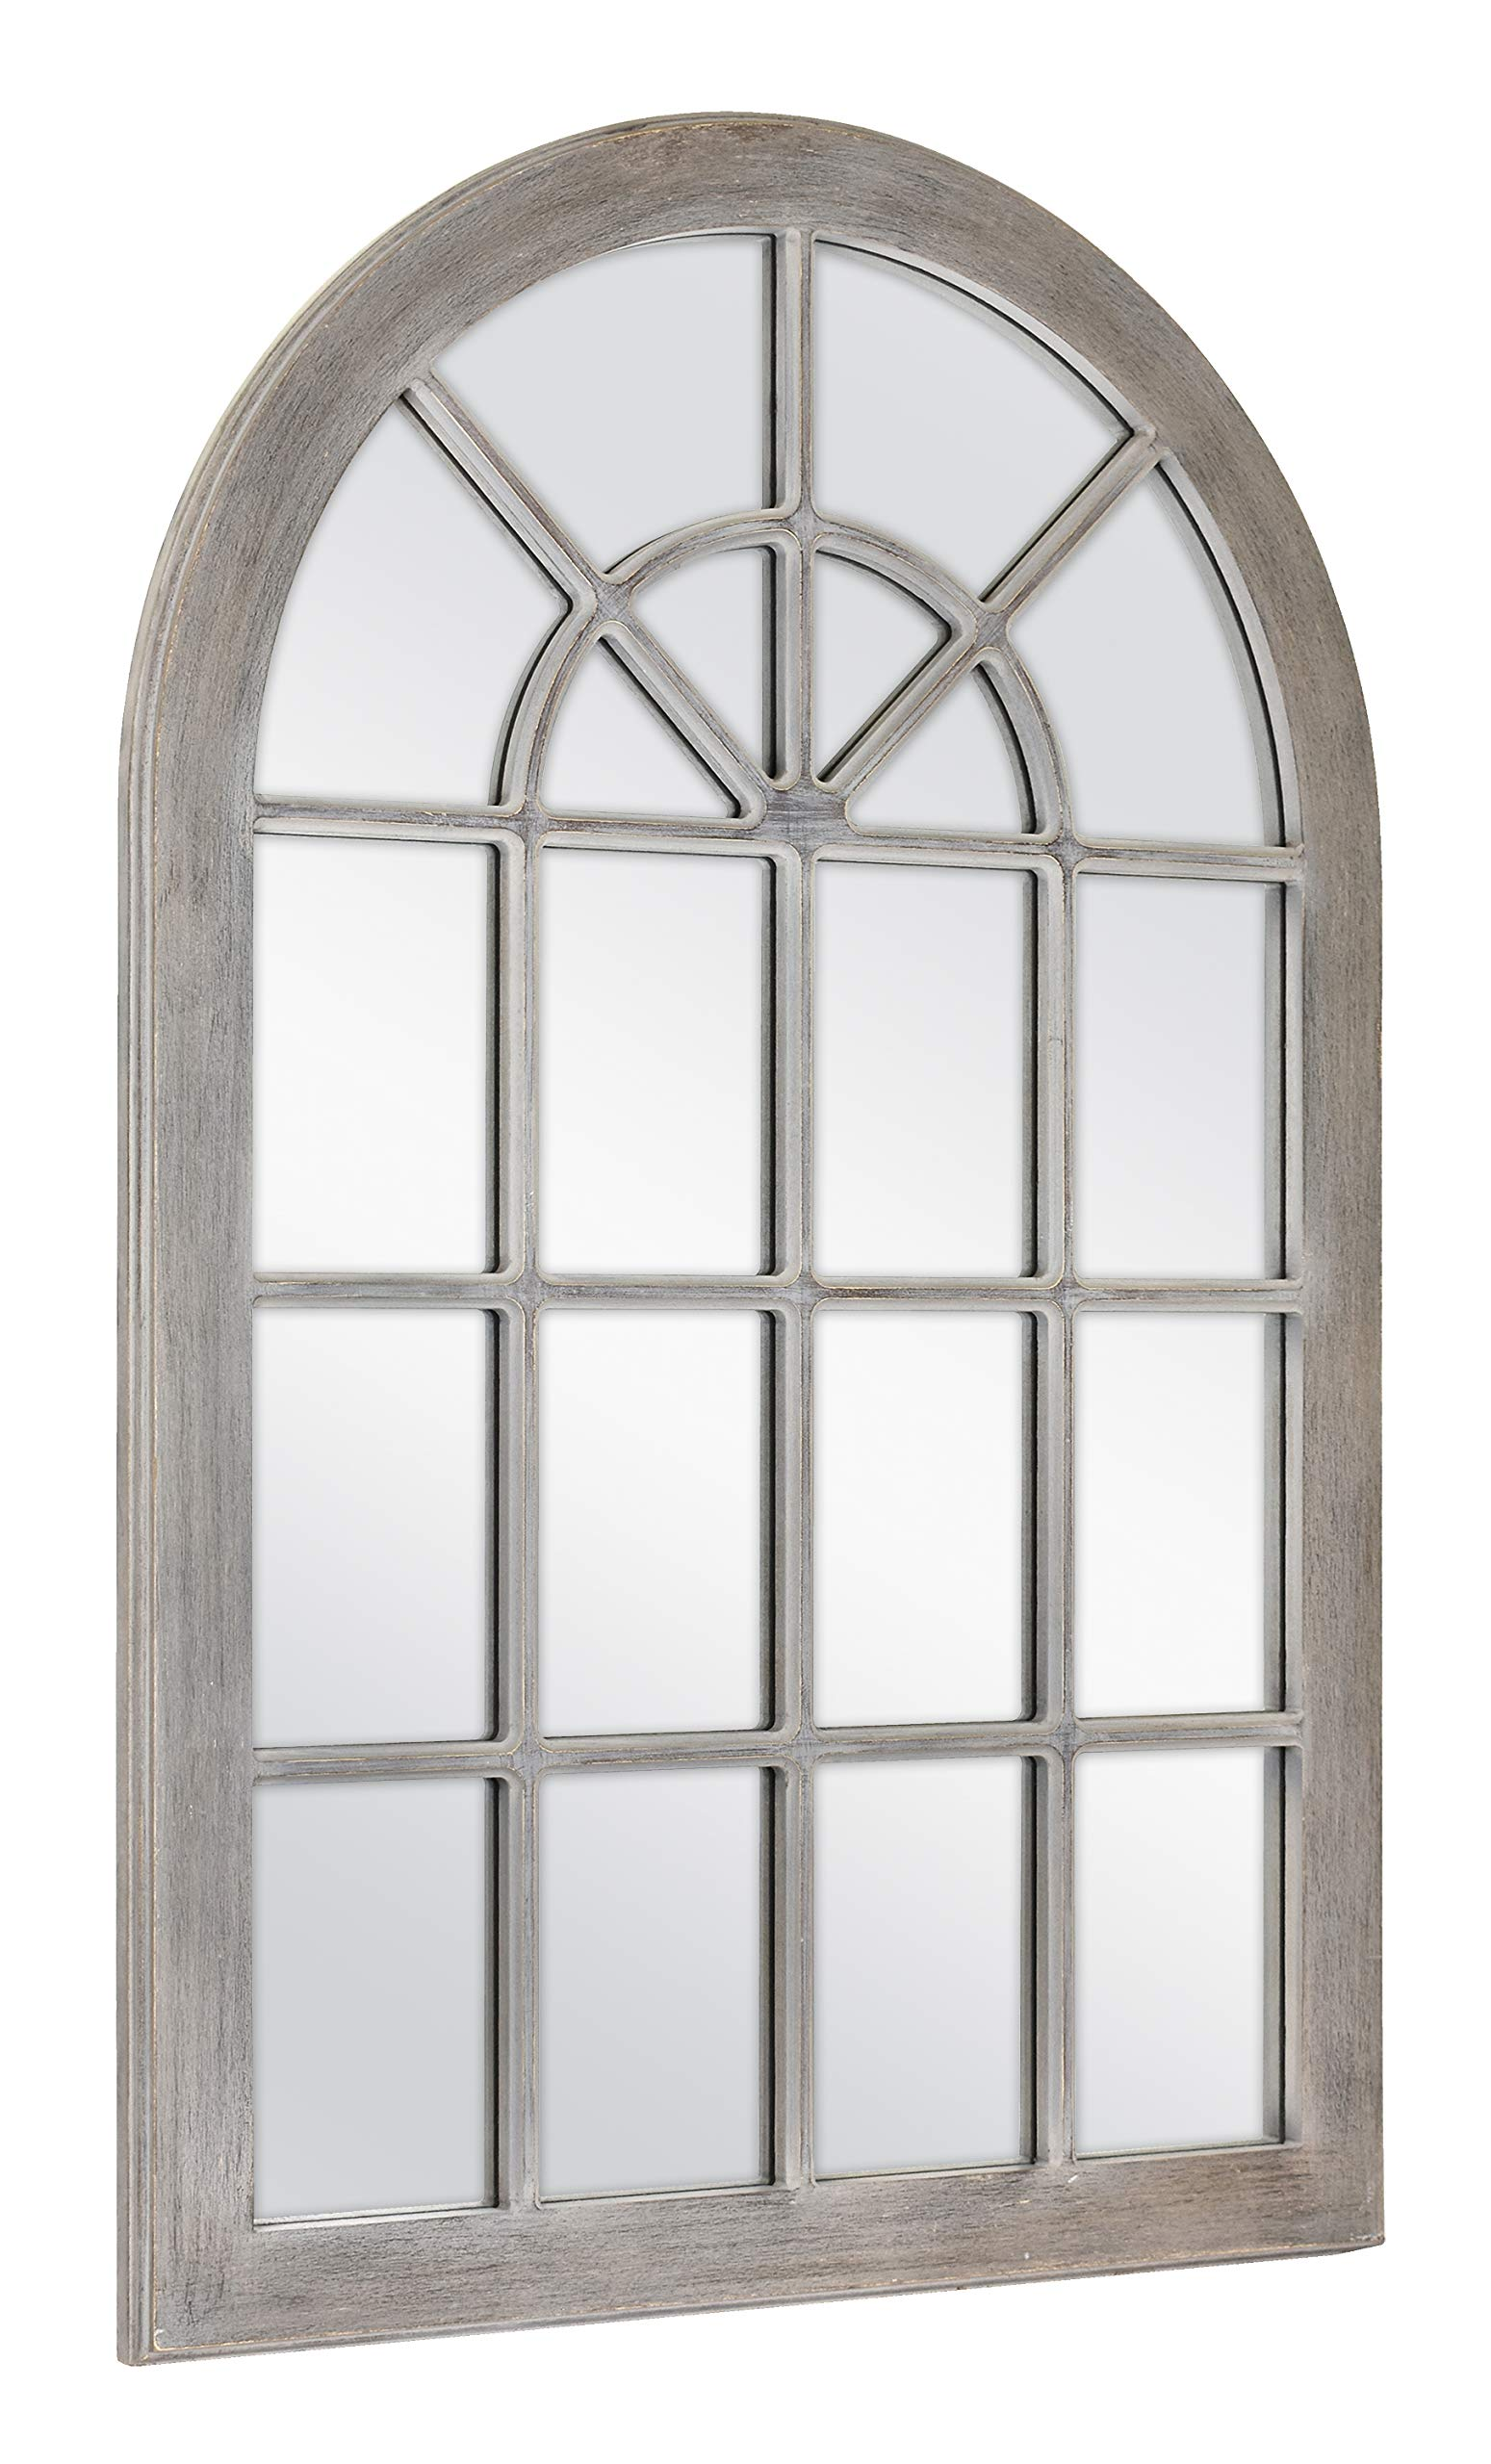 MCS 68874 Countryside Arched Windowpane Wall, Gray, 24x36 Inch Overall Size Mirror, by MCS (Image #2)